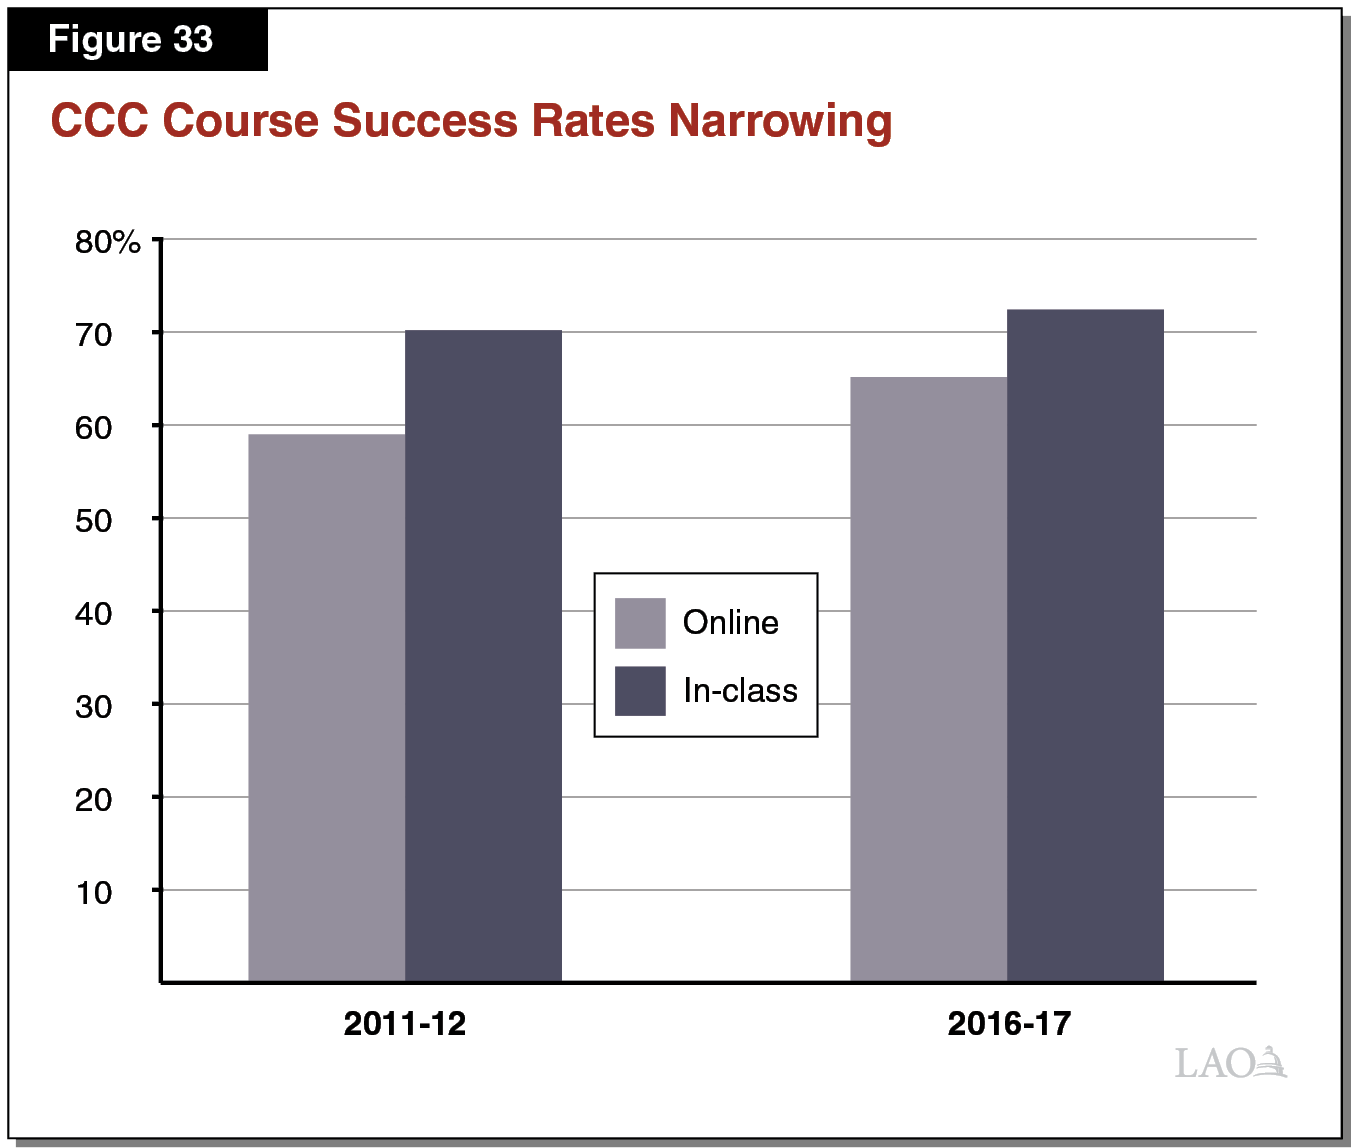 Figure 33 - CCC Course Success Rates